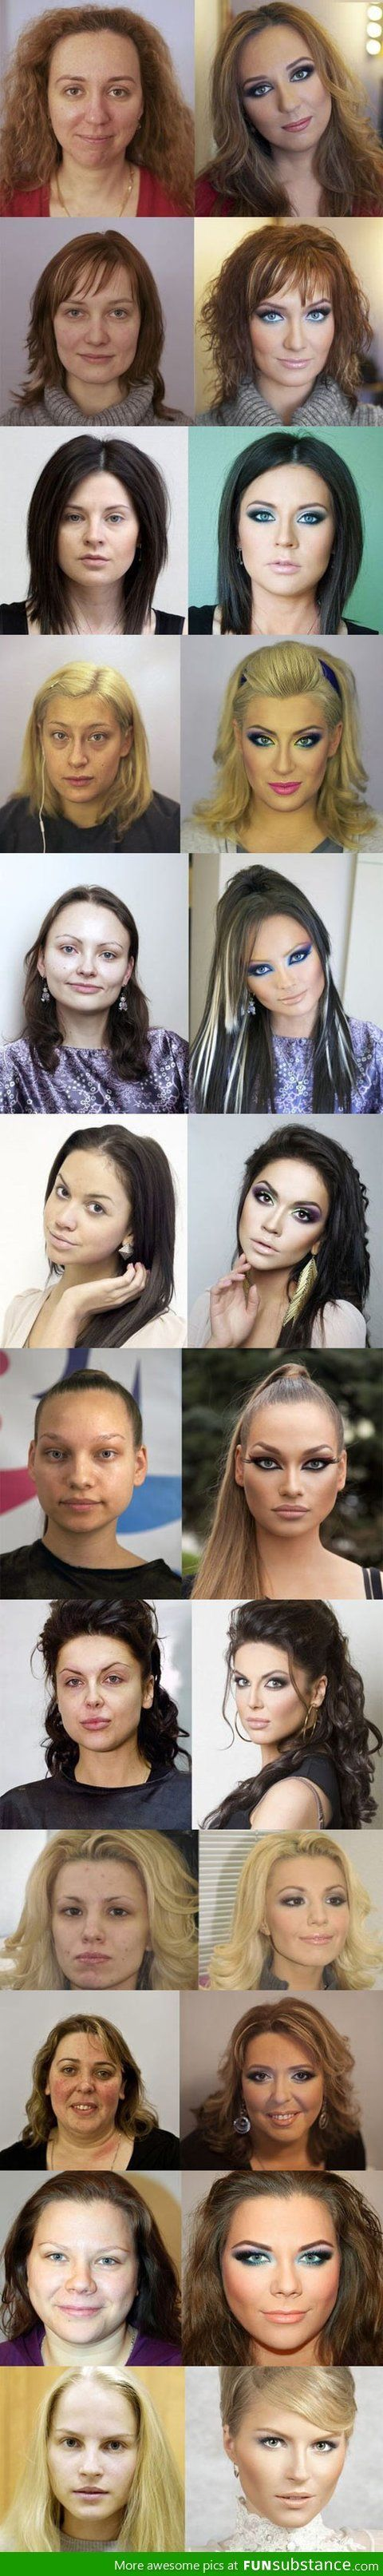 Power of Russian Makeup: Before and After - FunSubstance.com...I need me some Russian Makeup